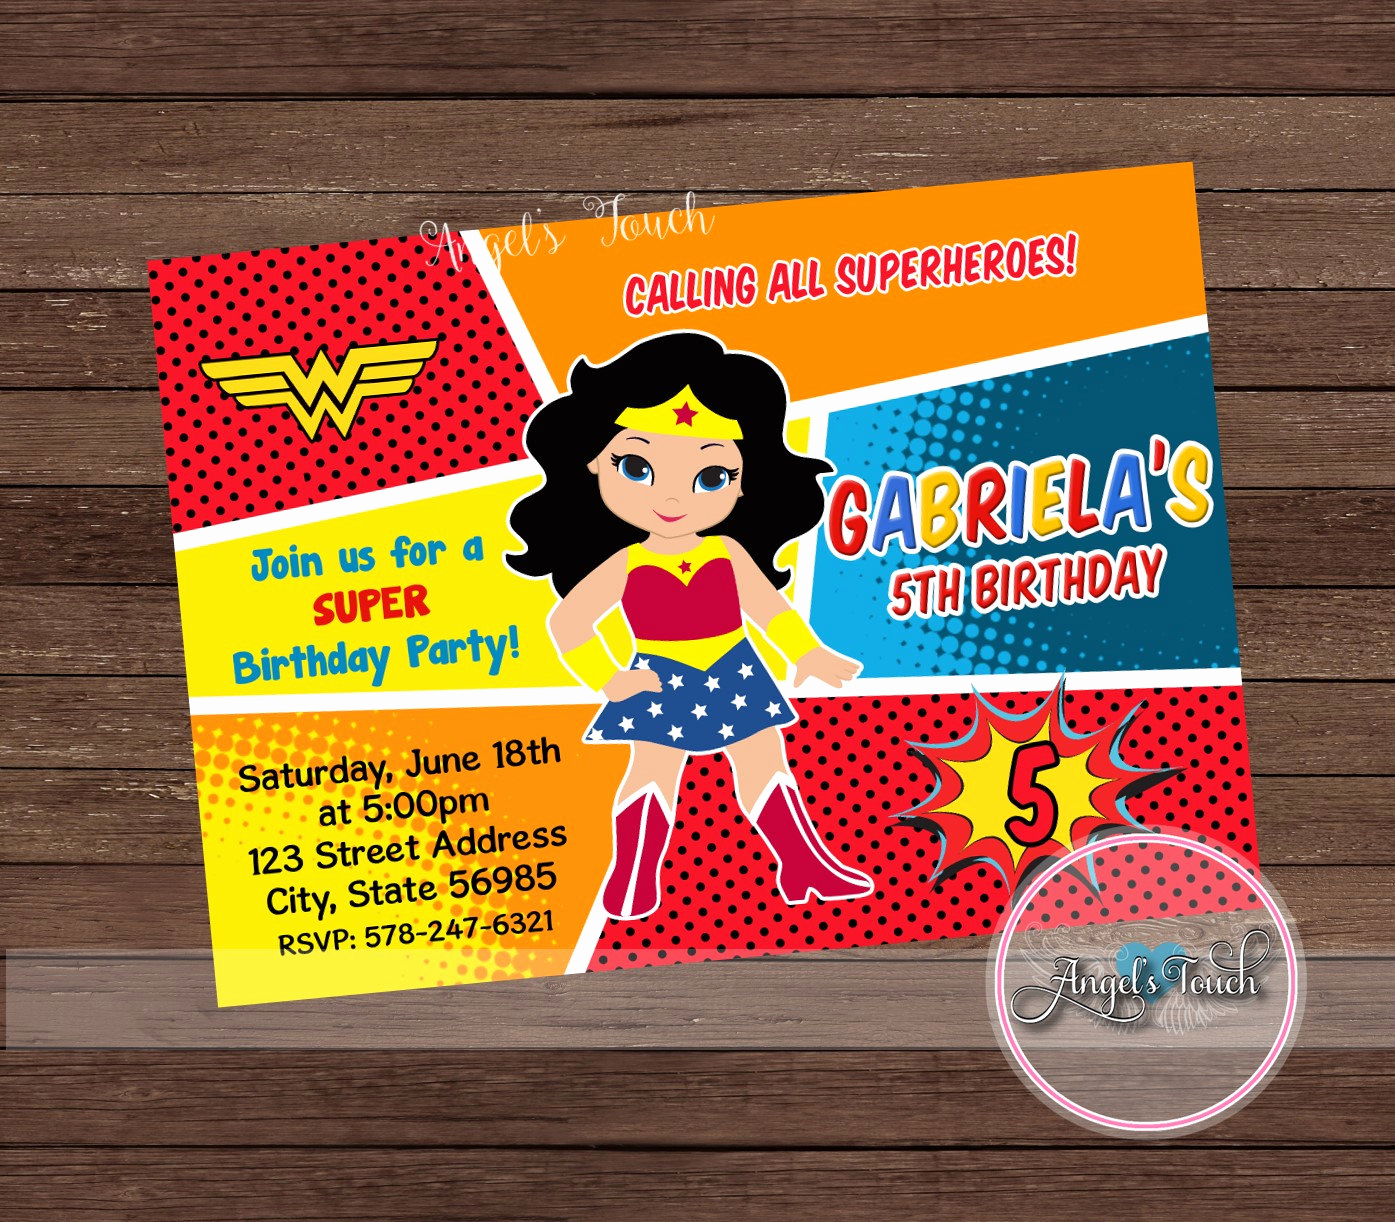 Wonder Woman Invitation Template Elegant Wonder Woman Party Invitation Wonder Woman Invitation Wonder